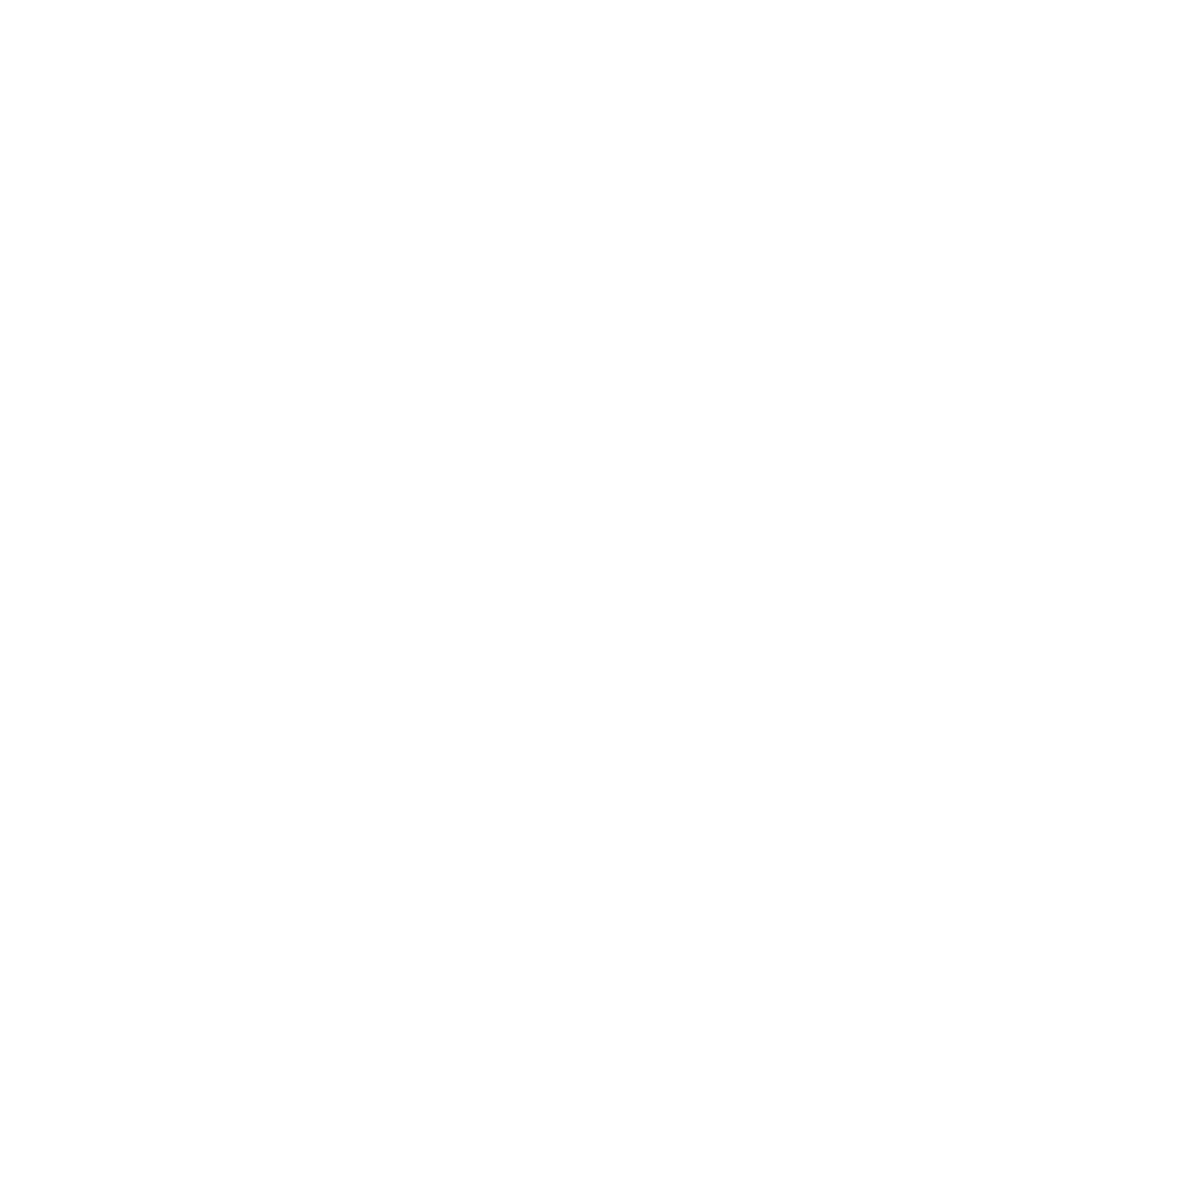 Drizzle Apparel Co. | A social enterprise clothing company